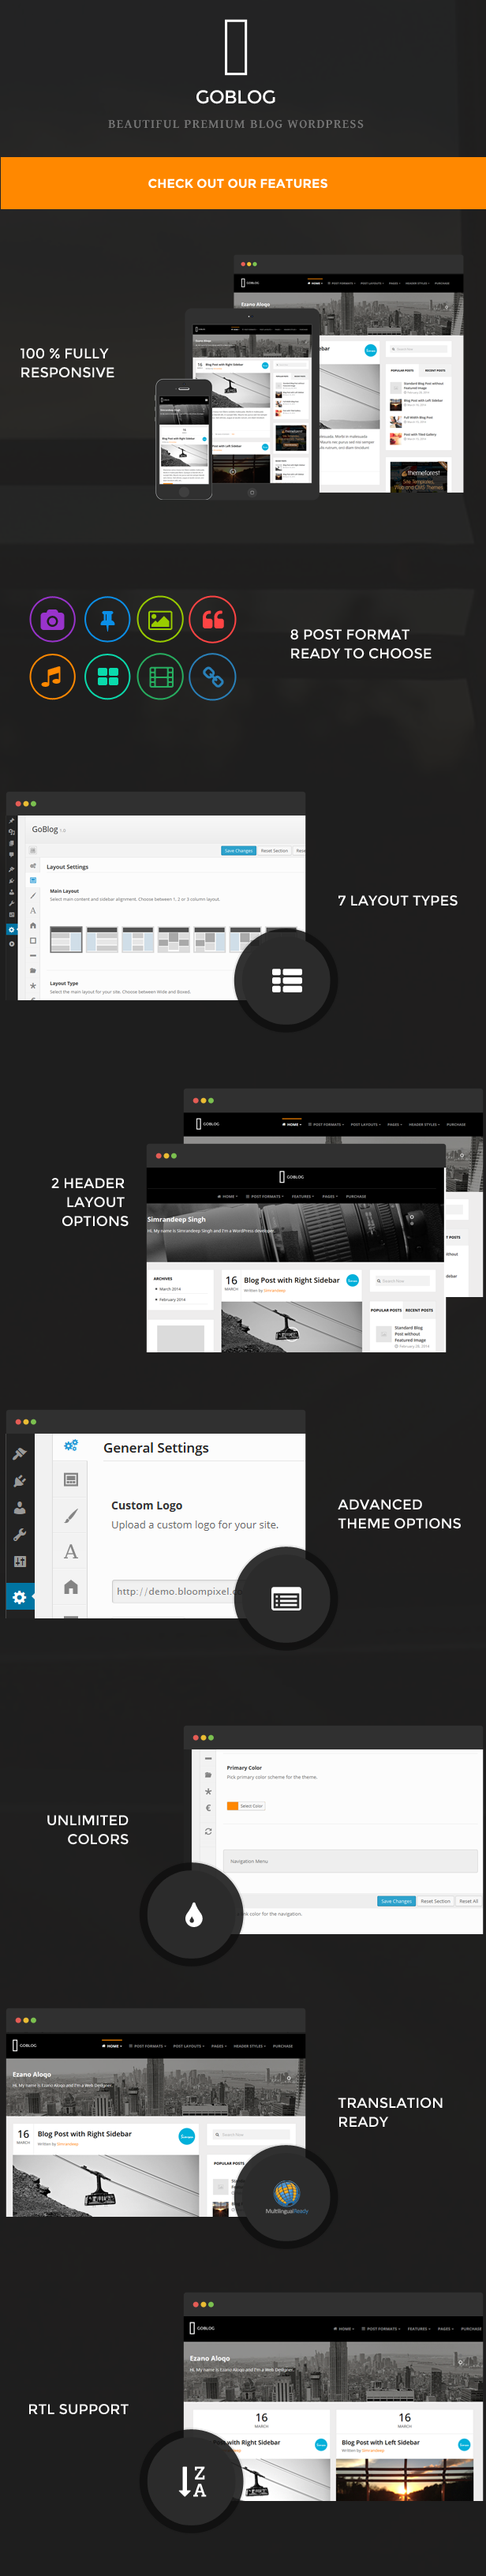 GoBlog - Responsive WordPress Blog Theme - 2